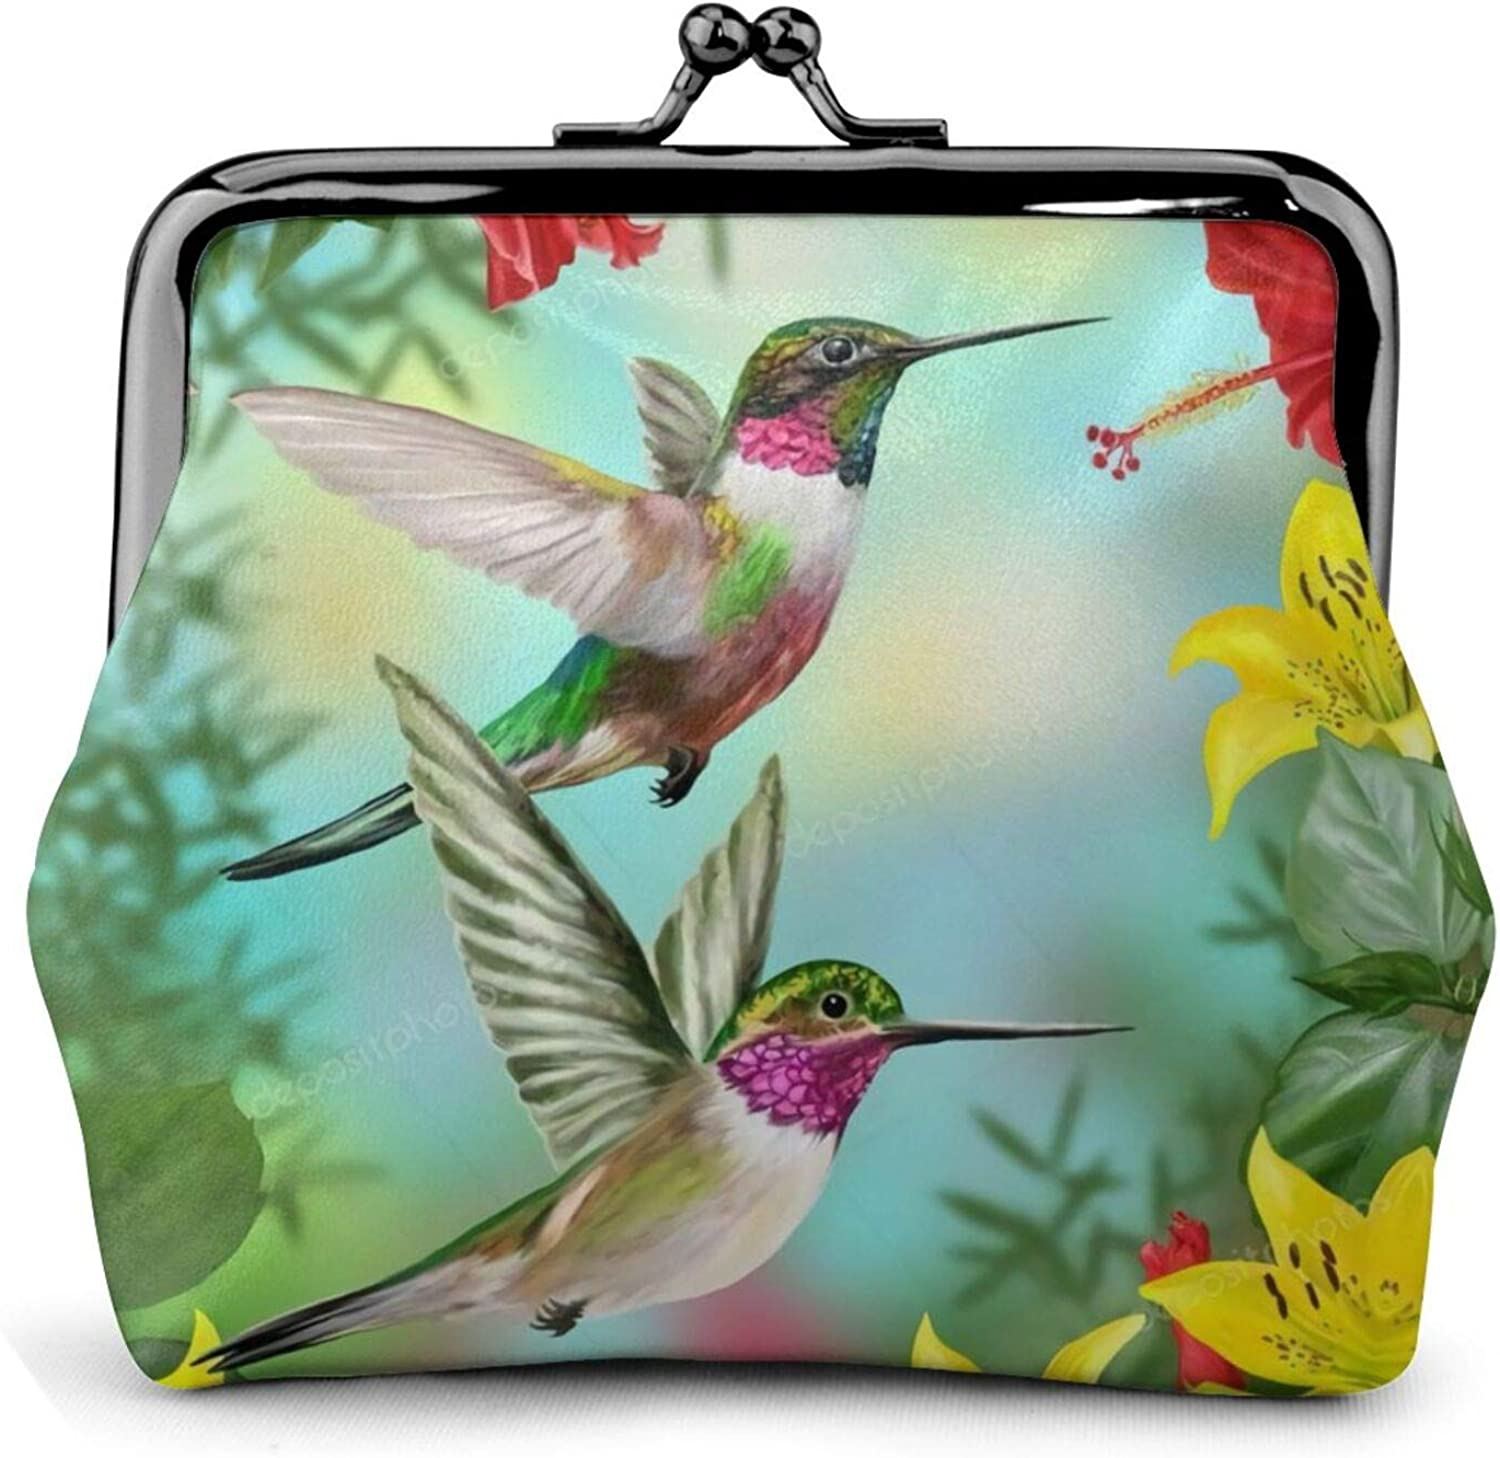 Hummingbirds Red Flower Hibiscus Yellow LiliesBuckle Coin Purses Women's Kiss-lock Closure Mini Vintage Pouch Leather Hasp Makeup Wallets Card Holder Cute for Men Women Girls Bags